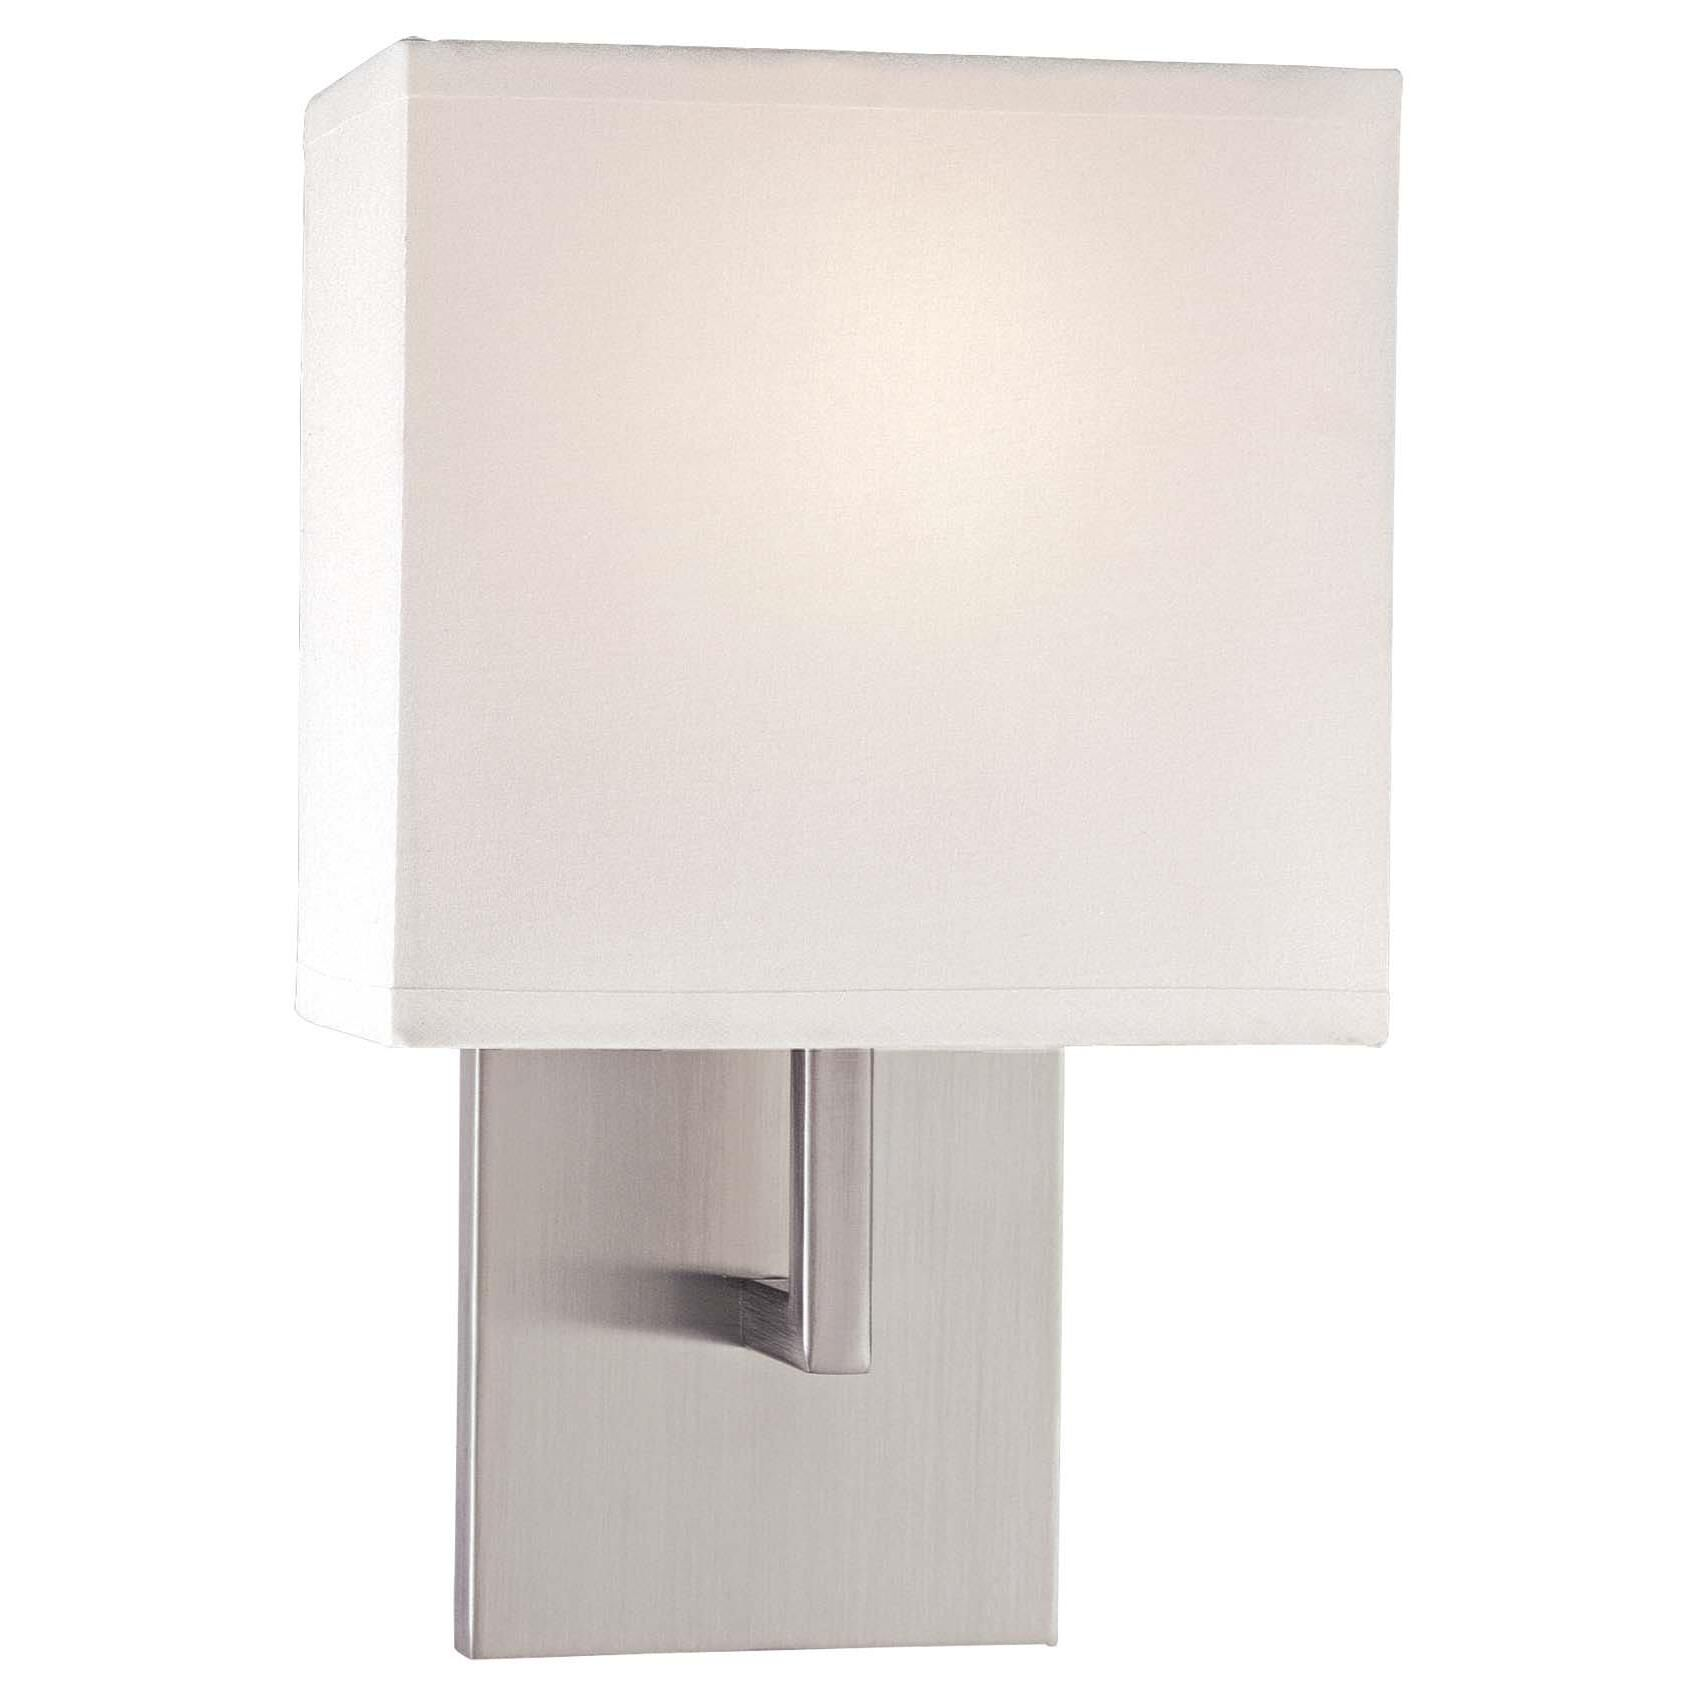 Kovacs 11 Inch Wall Sconce - P470-084 - Transitional